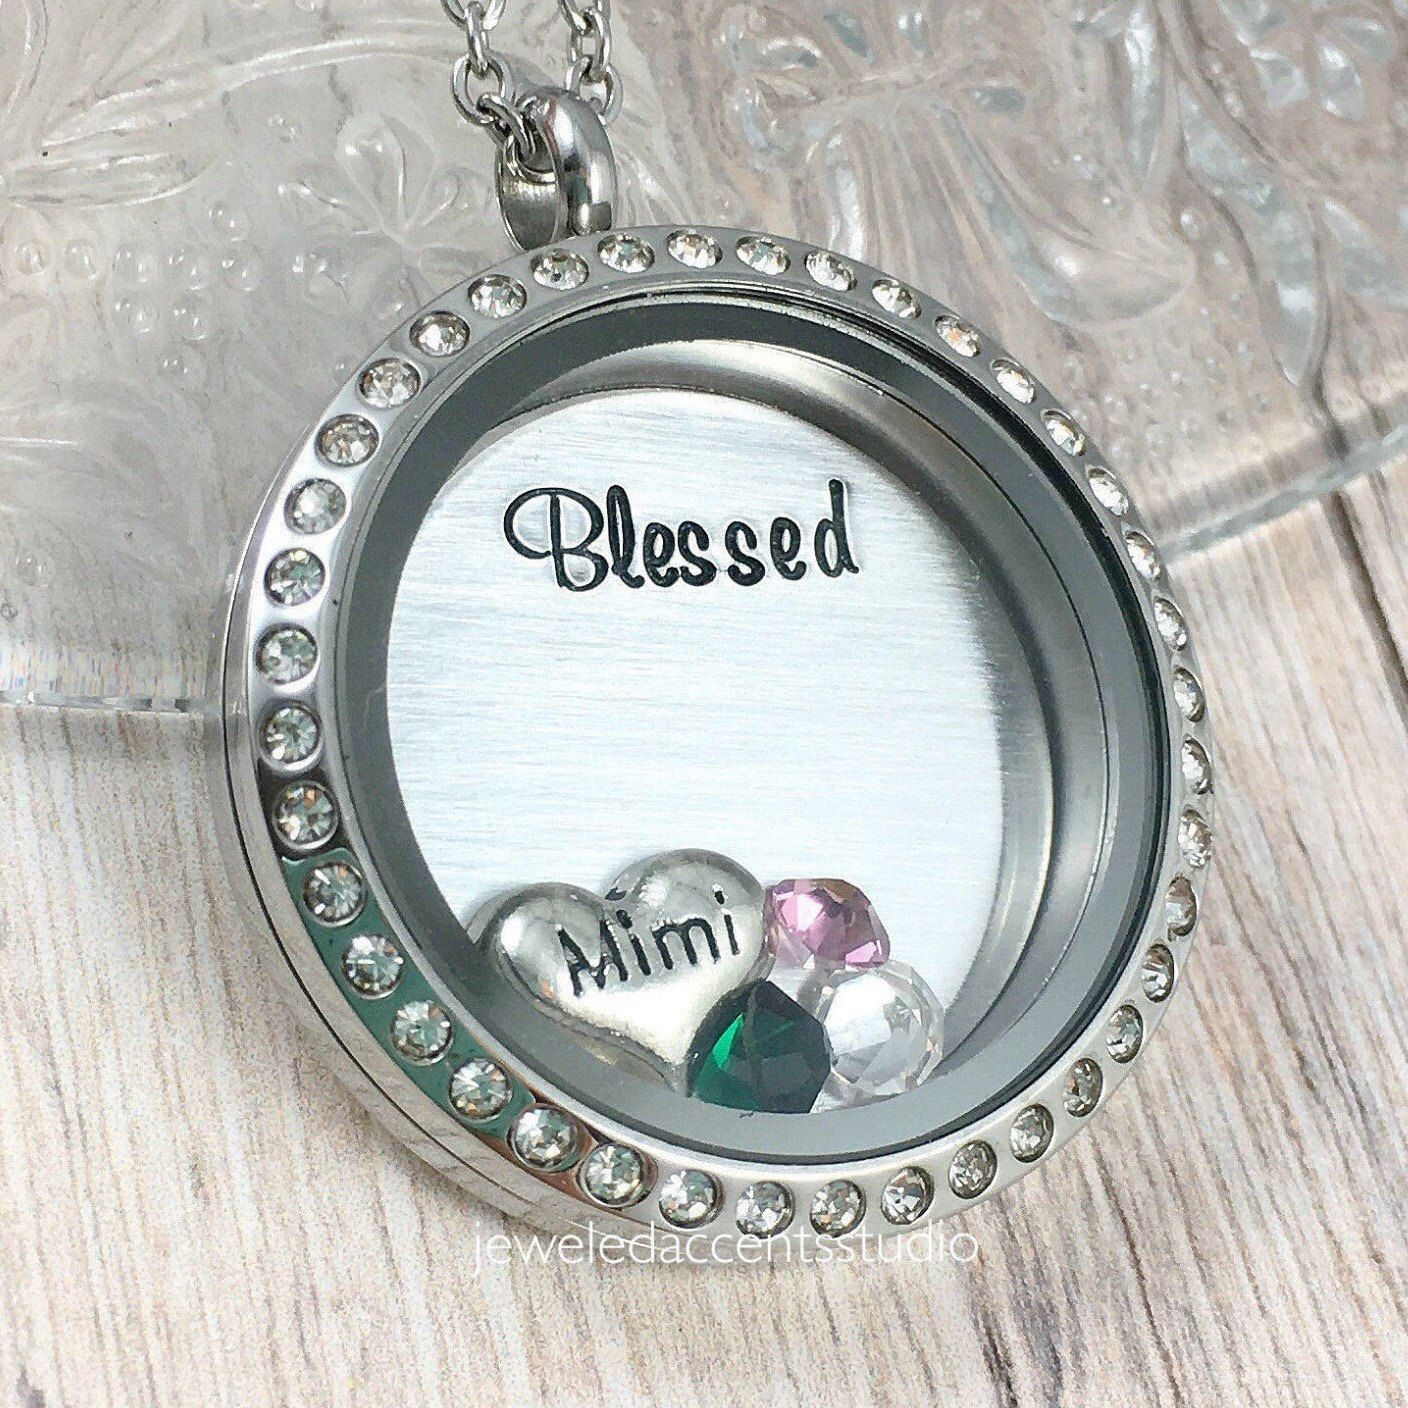 birthstone day gift mommothers mothers personalized tag necklace mommy grandma jewelry grandkid custom name silver pin for sterling four kids